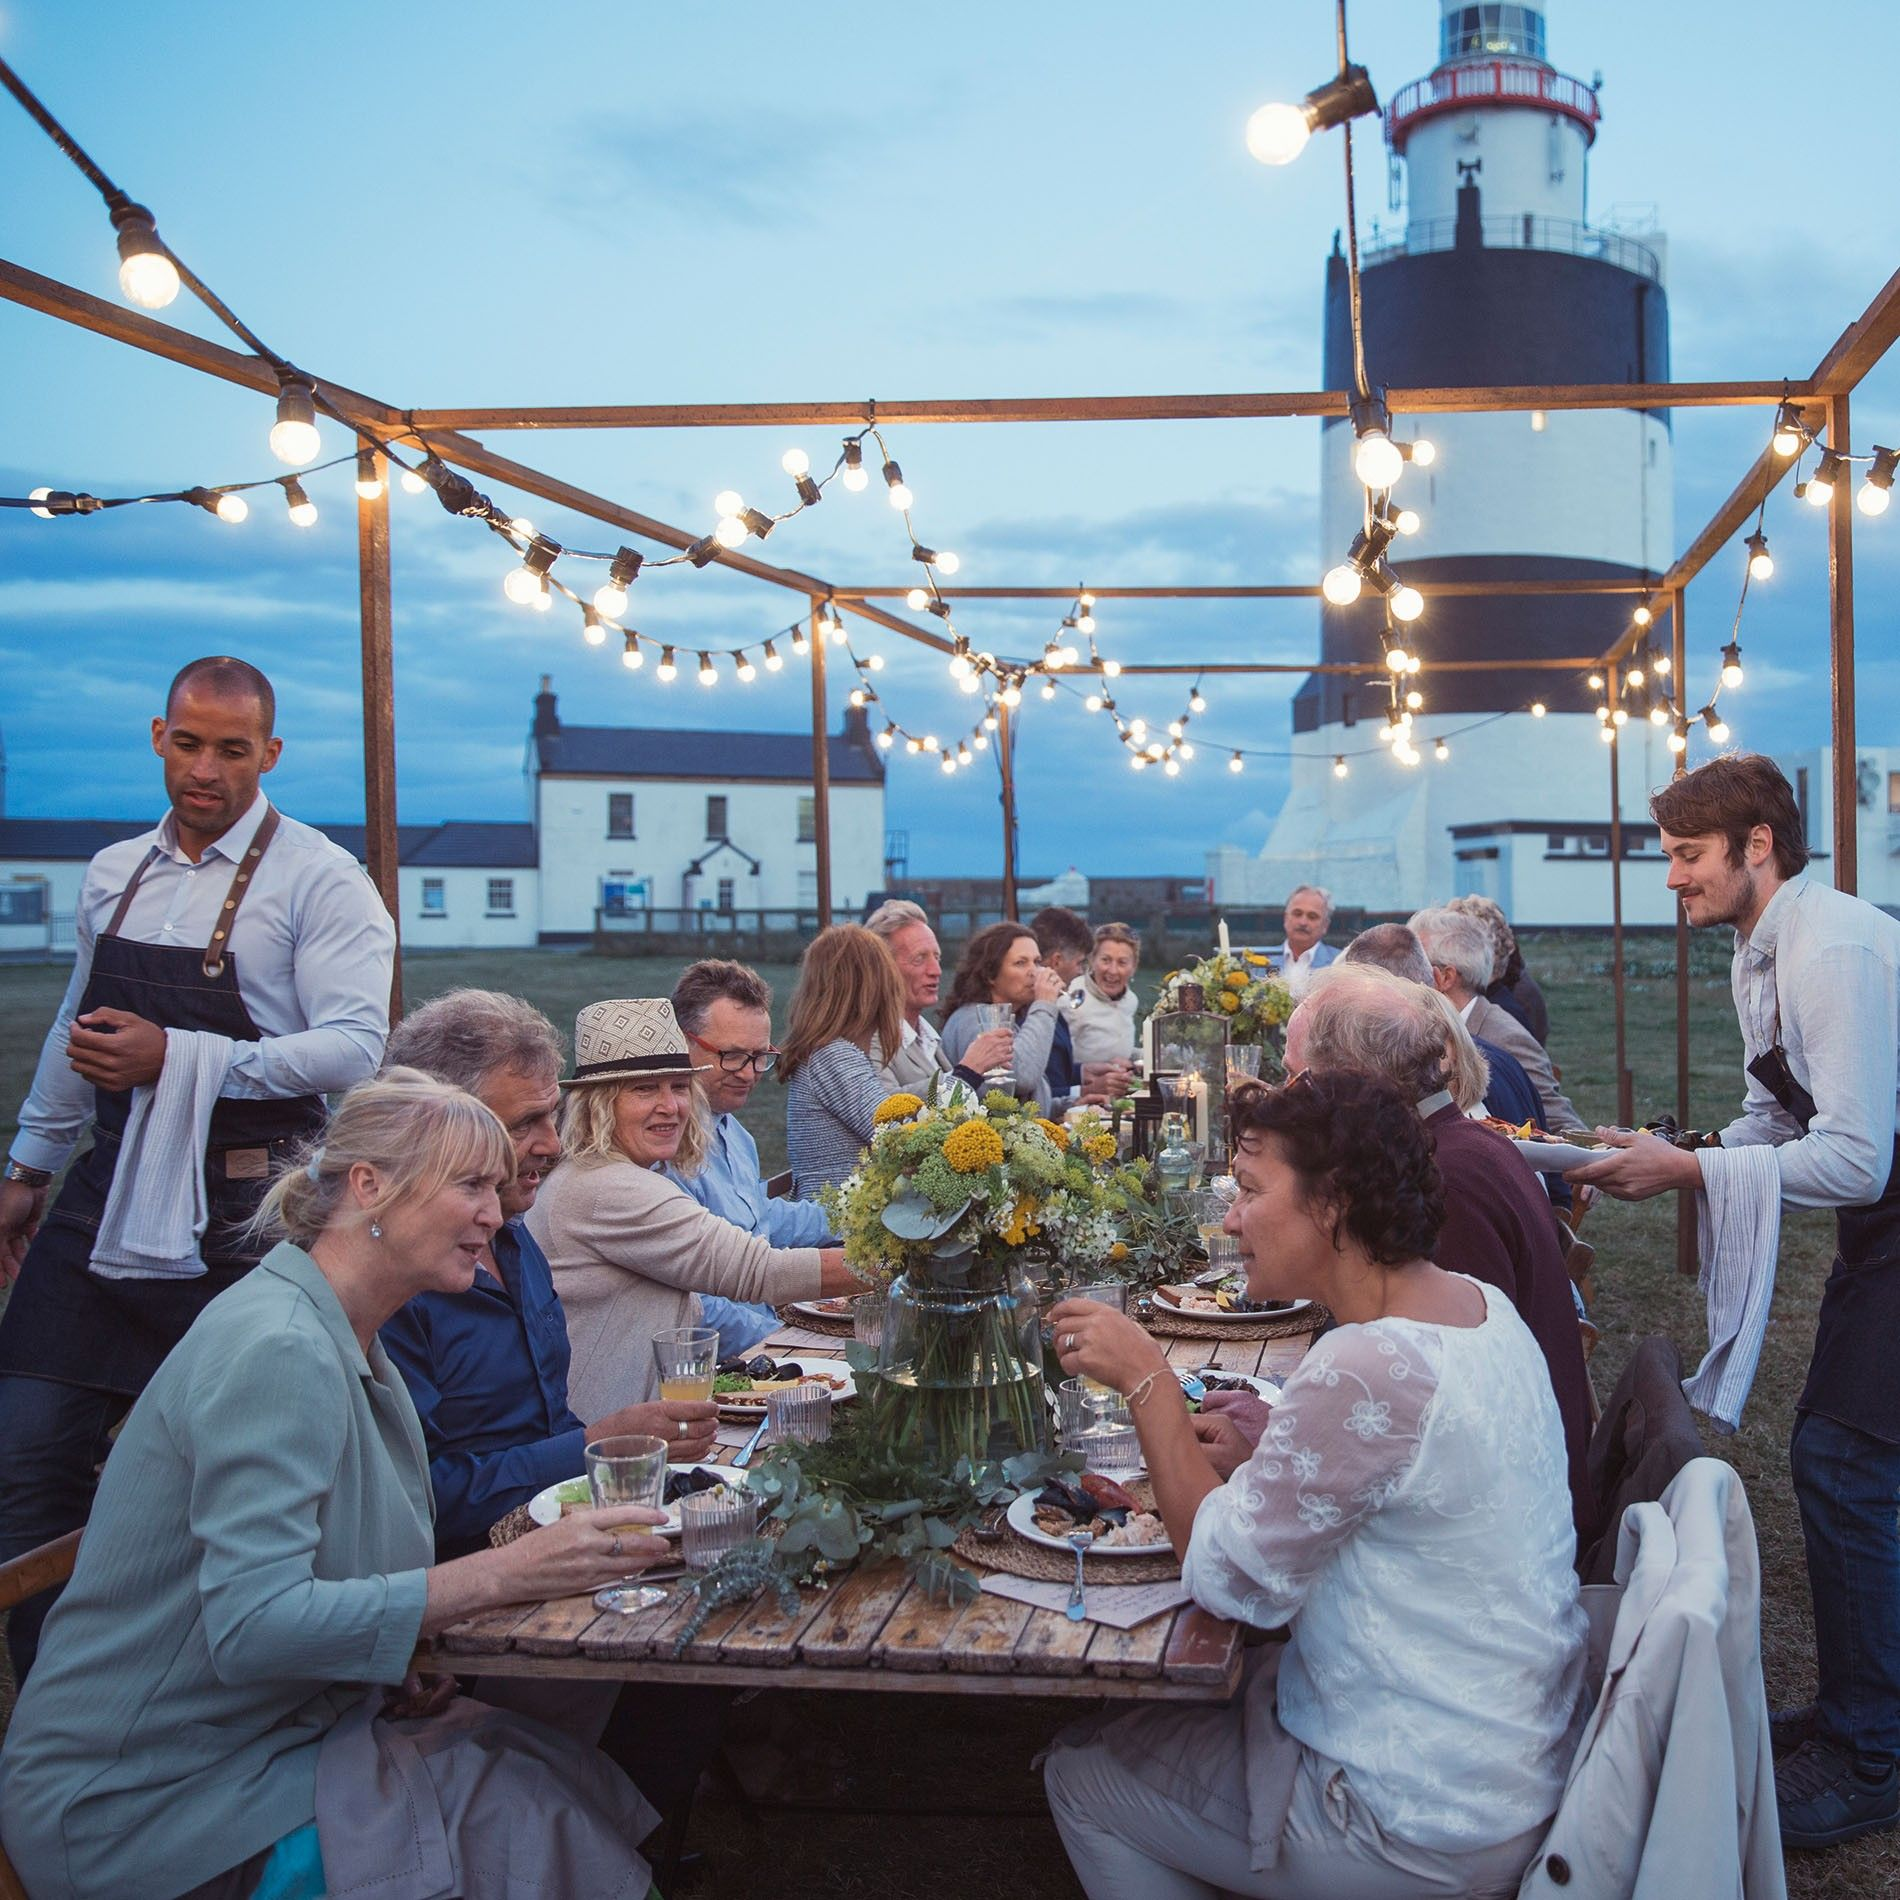 Dinner served al fresco at Hook Lighthouse, one of the most recognisable landmarks of County Wexford, ...